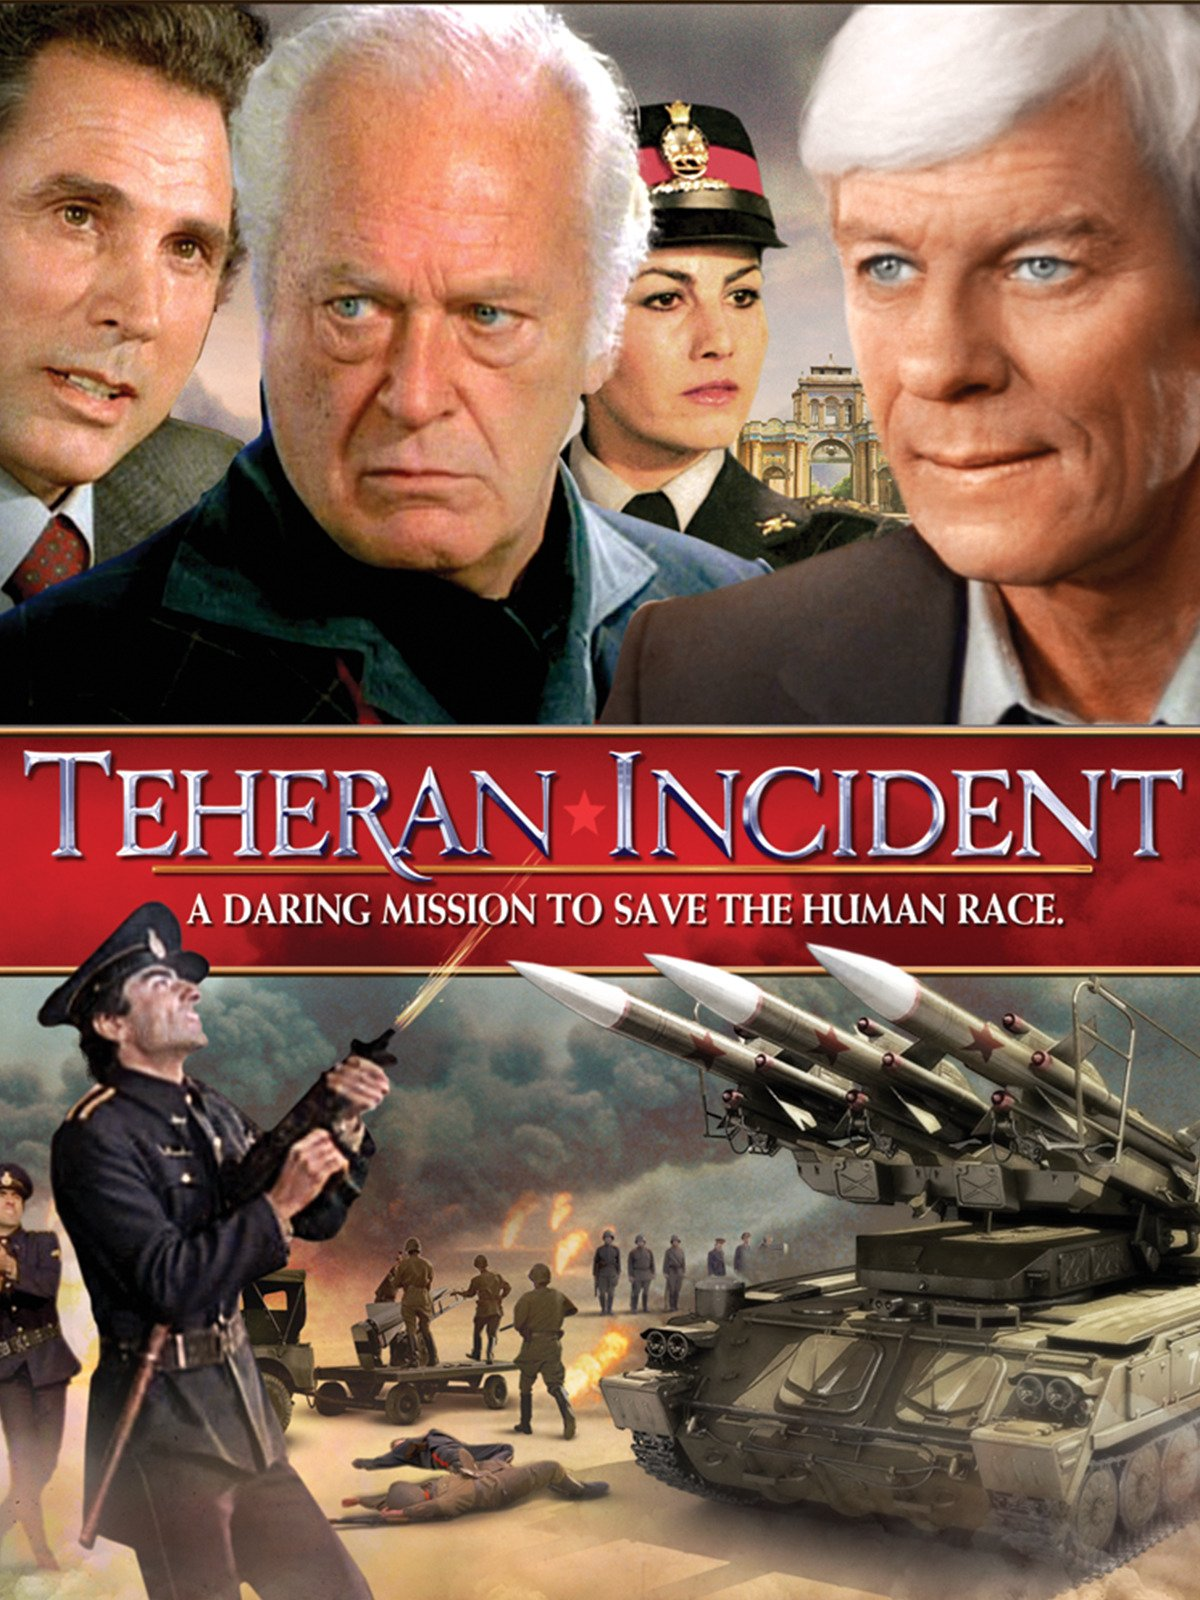 Teheran Incident